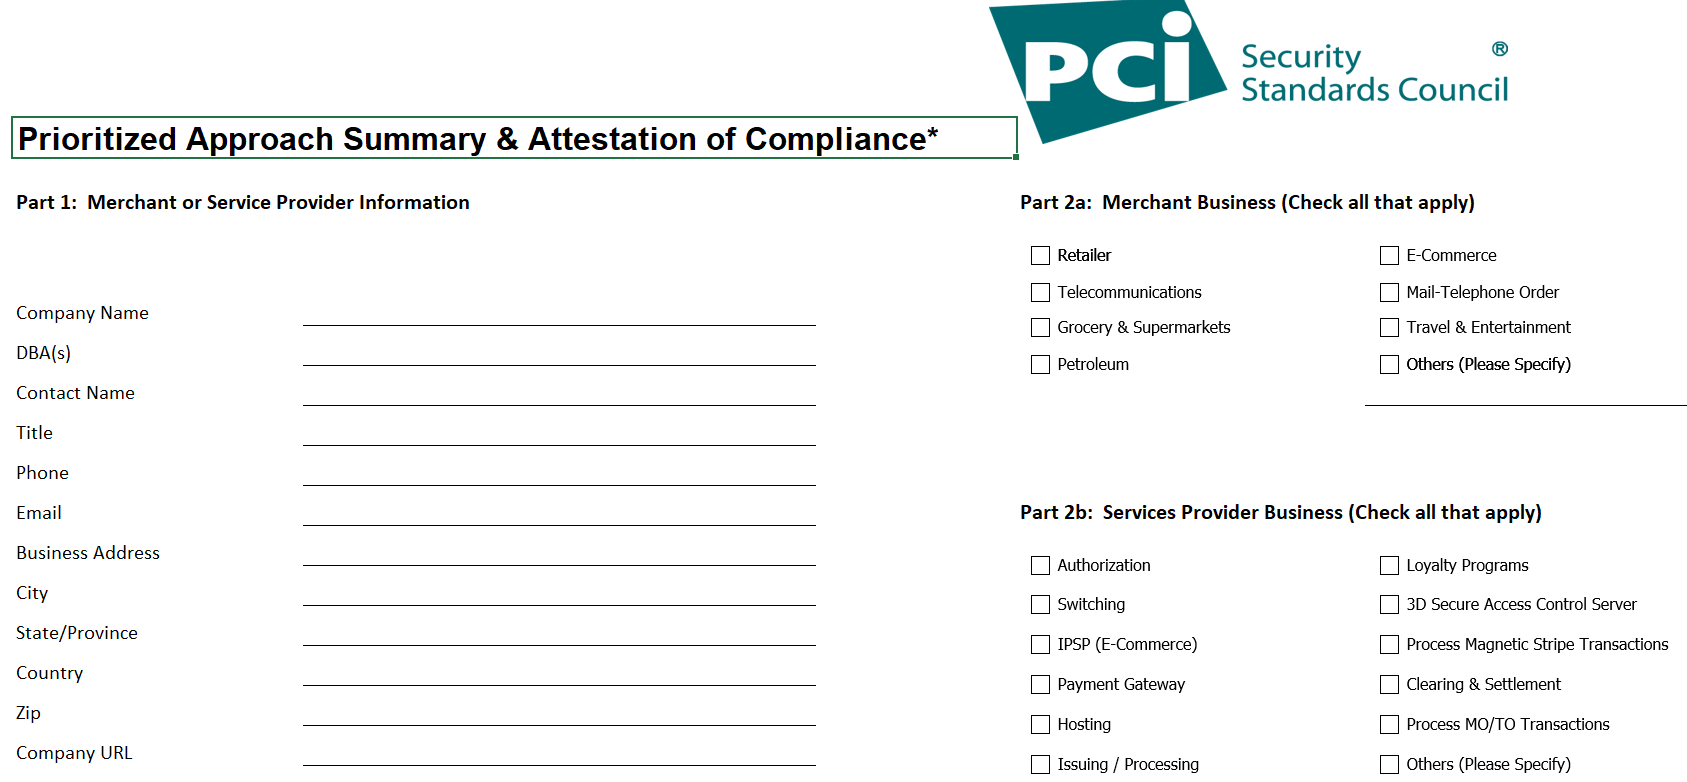 The Prioritized Approach to PCI DSS compliance utilizes a helpful tool for implementing, tracking, and reporting progress